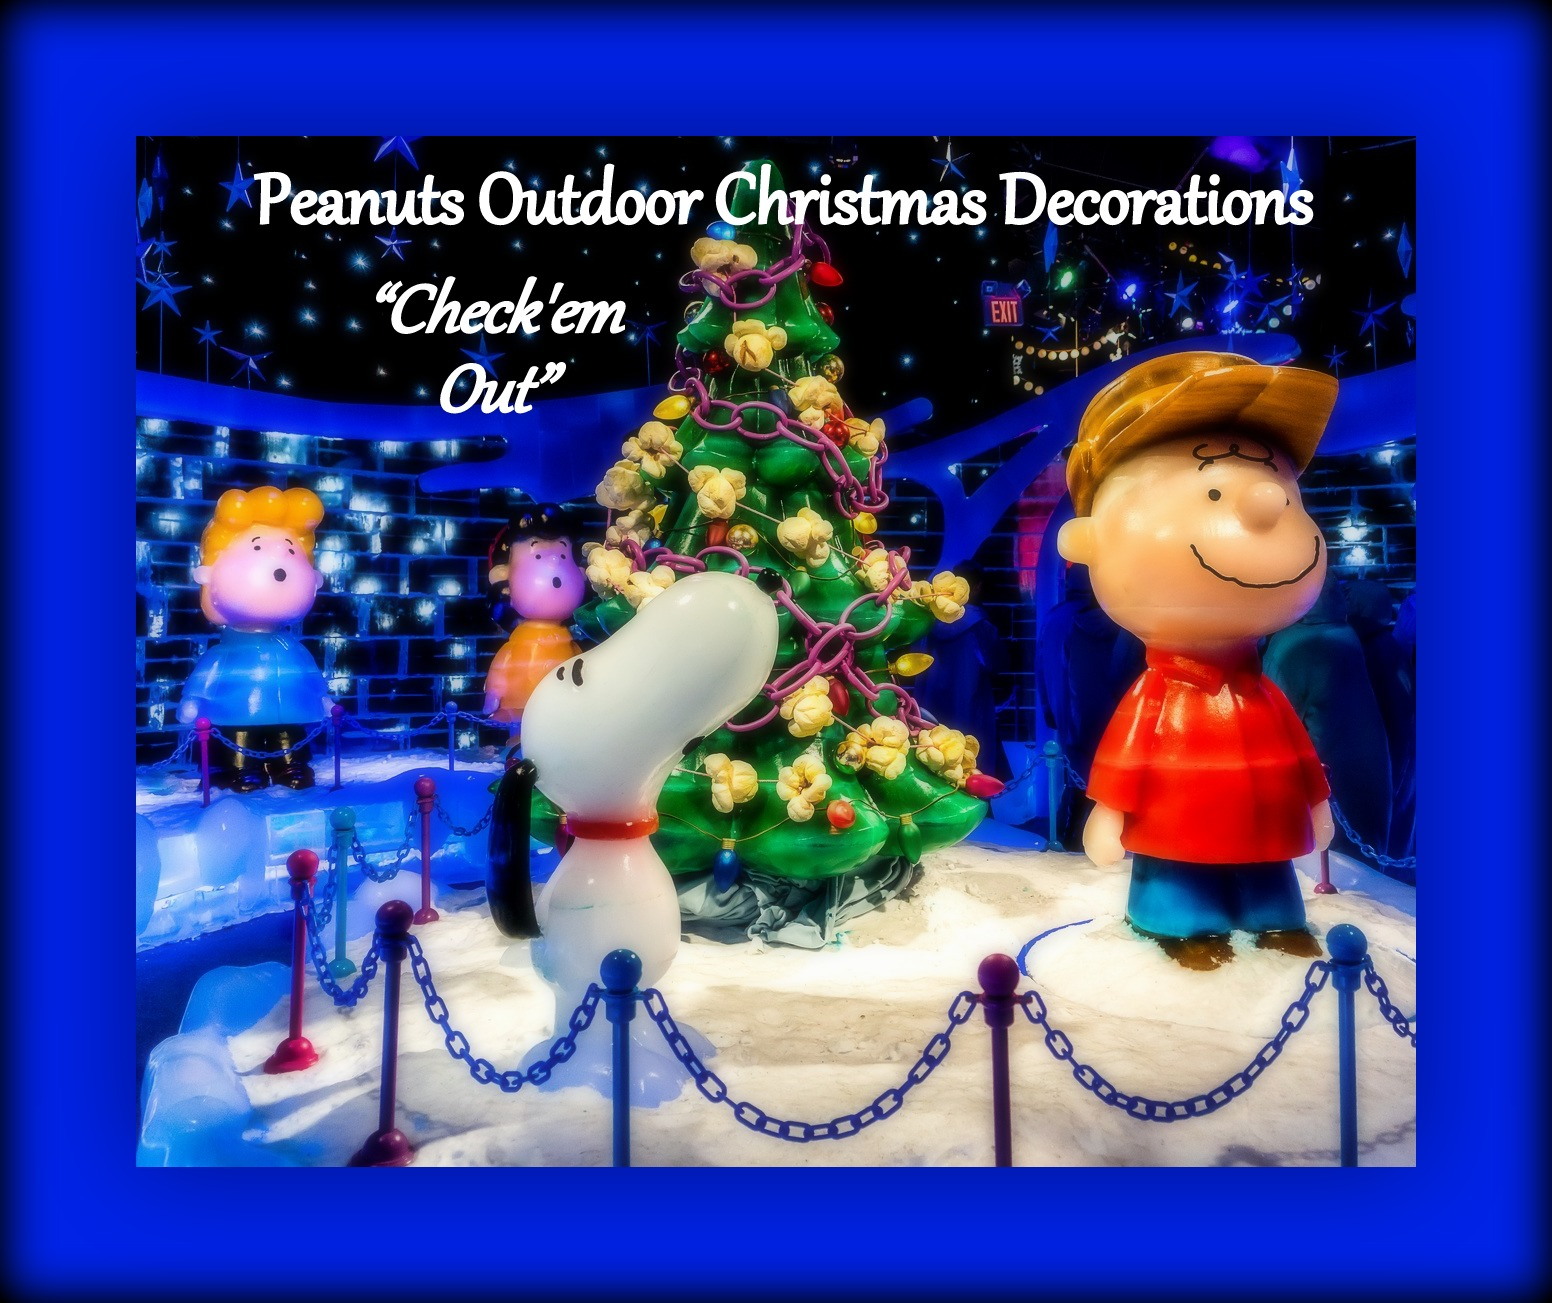 Snoopy outdoor christmas decorations - Snoopy Outdoor Christmas Decorations 43